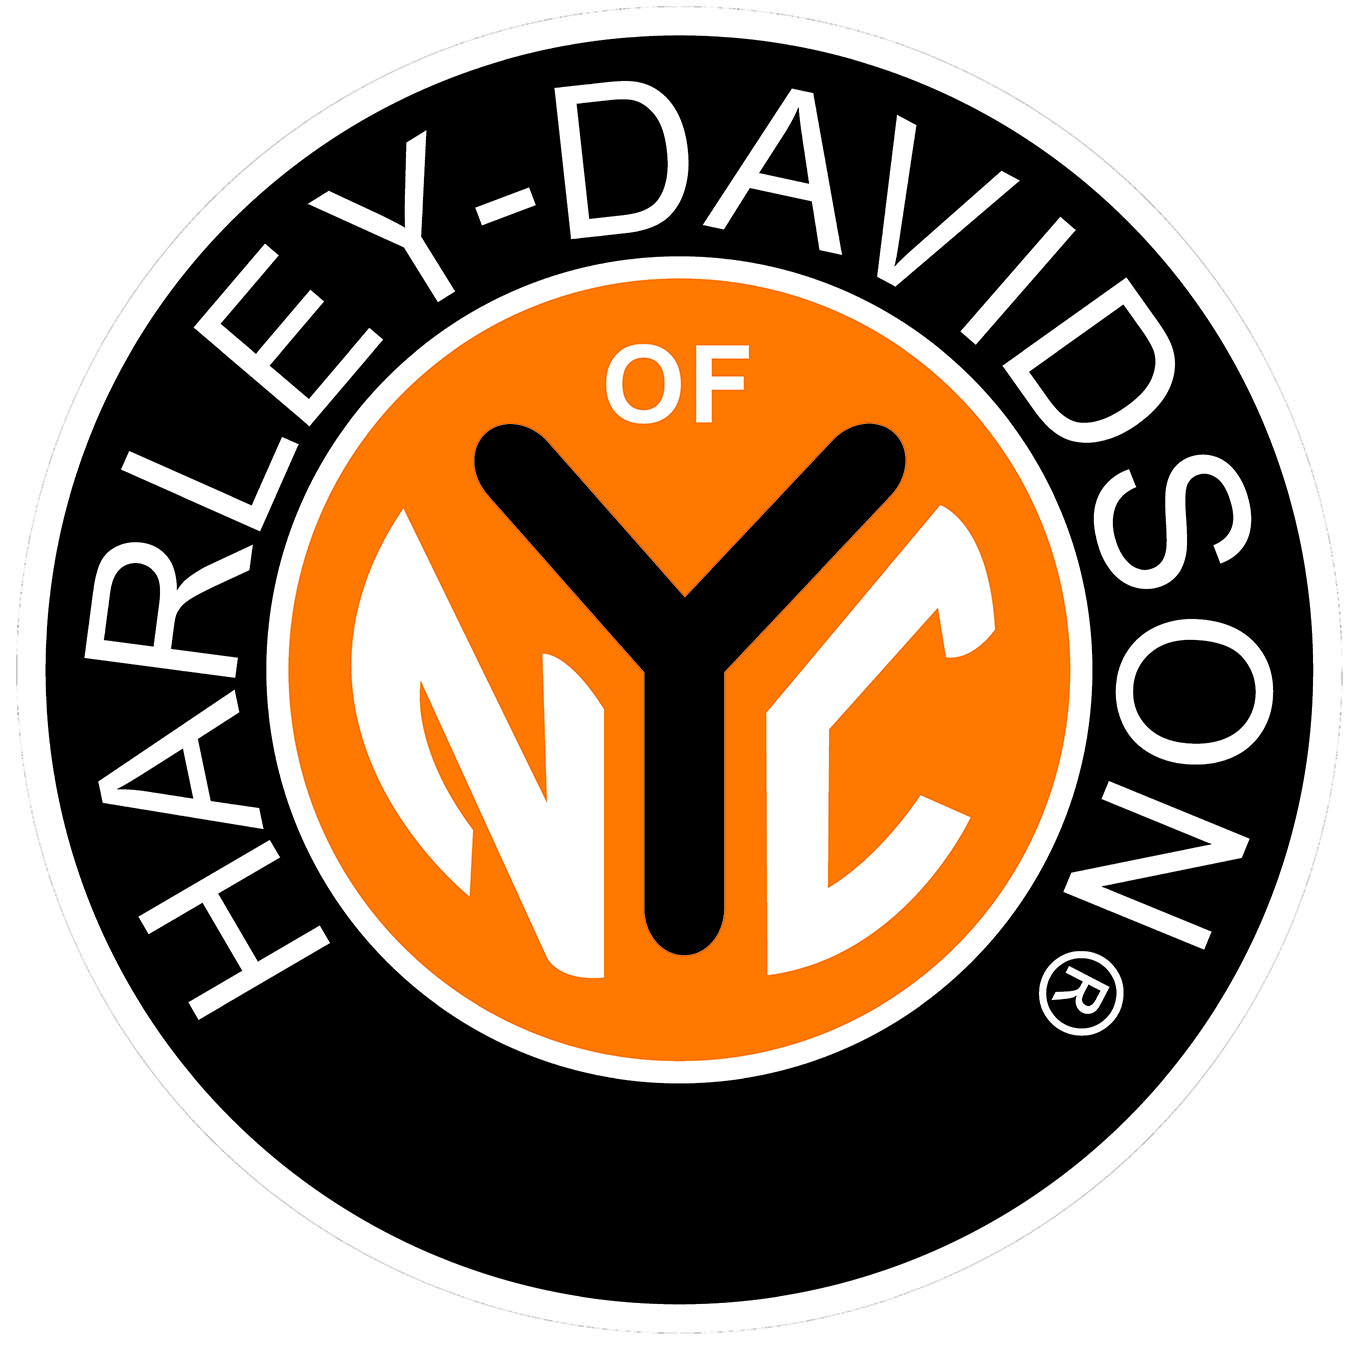 harley-davidson of new york city opens flagship dealership in